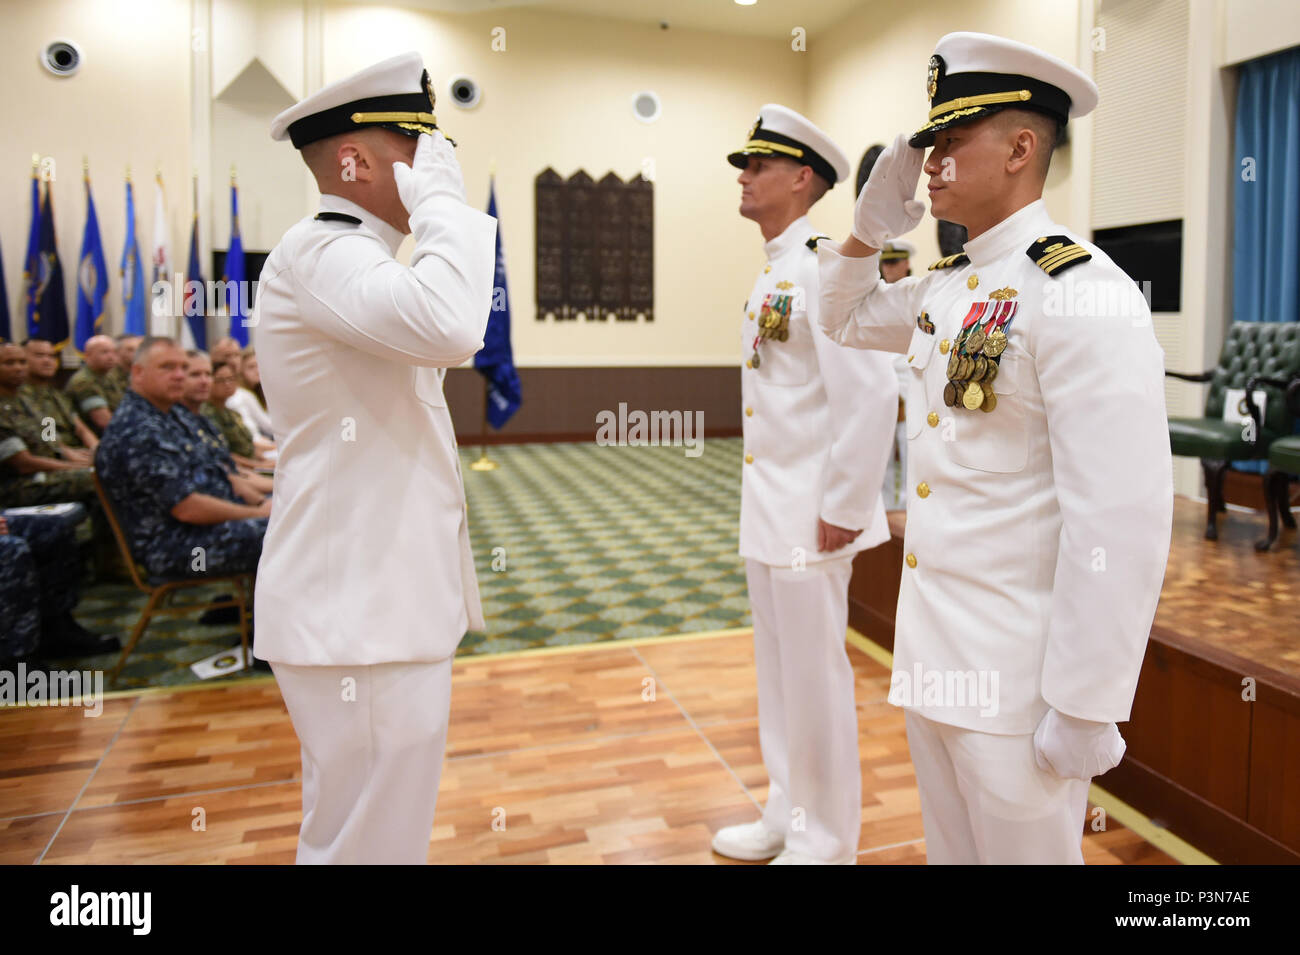 160708-N-DH124-170  OKINAWA, Japan (July 8, 2016) - Cmdr. James Cho salutes Commander, 30th Naval Construction Regiment, Capt. Jeffrey Killian, official taking charge as commanding officer of Naval Mobile Construction Battalion (NMCB) 4 on Camp Shields in Okinawa, Japan, Jul. 8.  Cho transferred from Naval Facilities Engineering Command (NAVFAC) Southwest, serving as the Public Works Officer at Naval Base San Diego.  (U.S. Navy photo by Mass Communication Specialist 1st Class Rosalie Chang/Released) - Stock Image